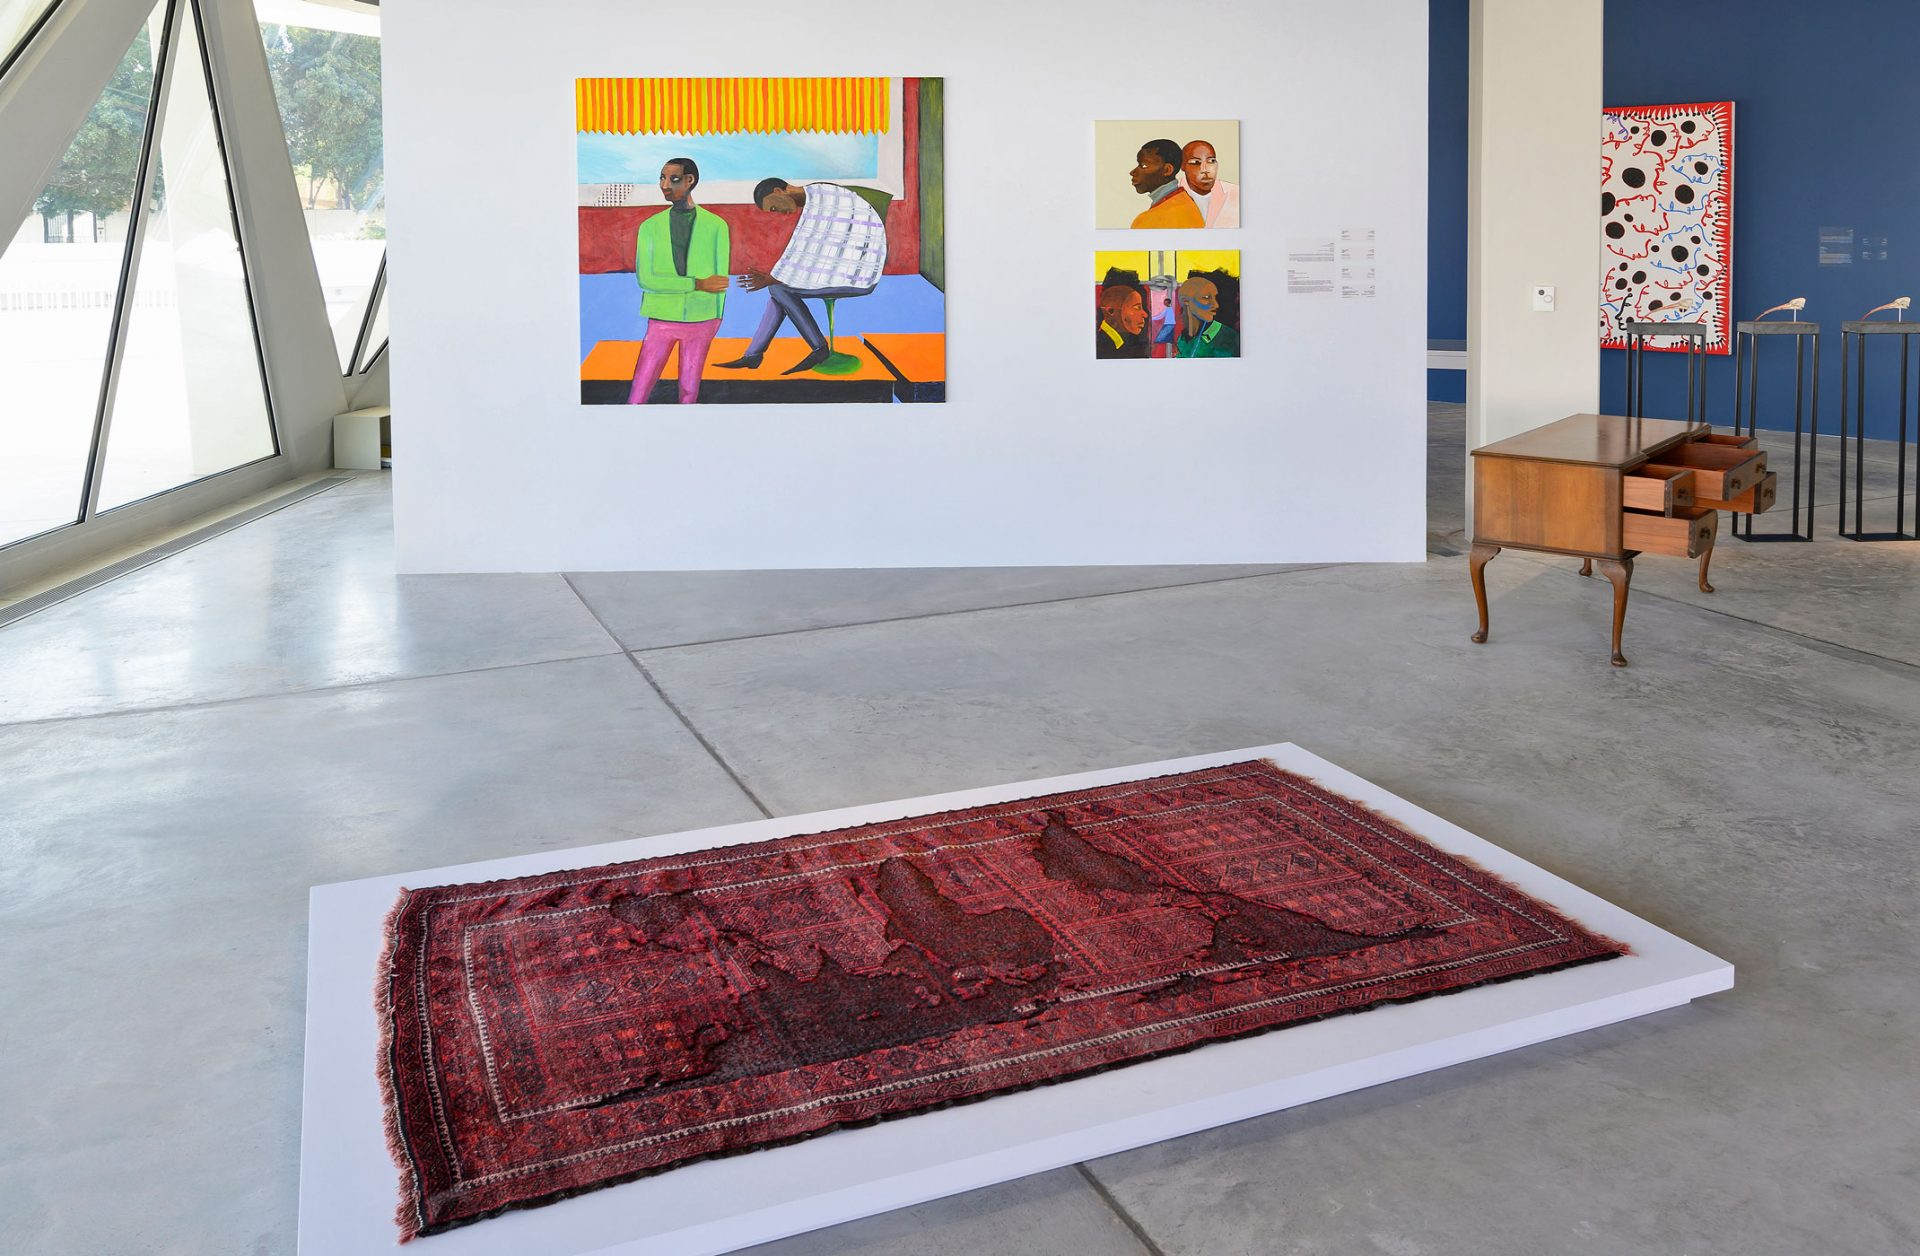 Lubaina Himid and Bruno Pacheco in Unsettled Objects, Sharjah Art Foundation, 12 March – 15 June 2021